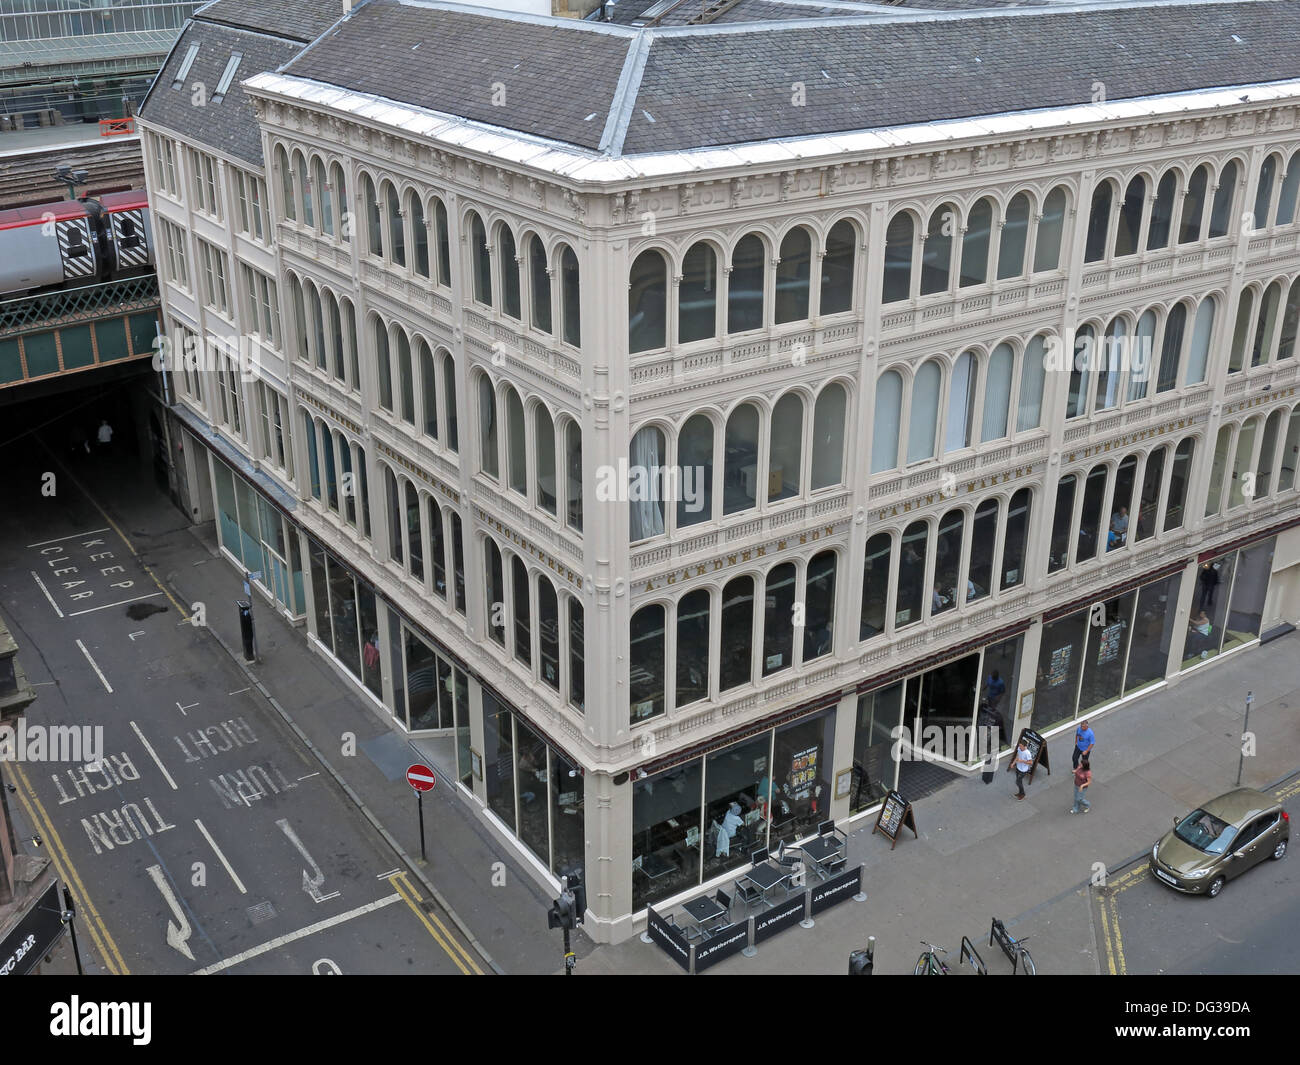 The S Gardner & son Building, 36 Jamaica st, Glasgow Scotland UK - Stock Image